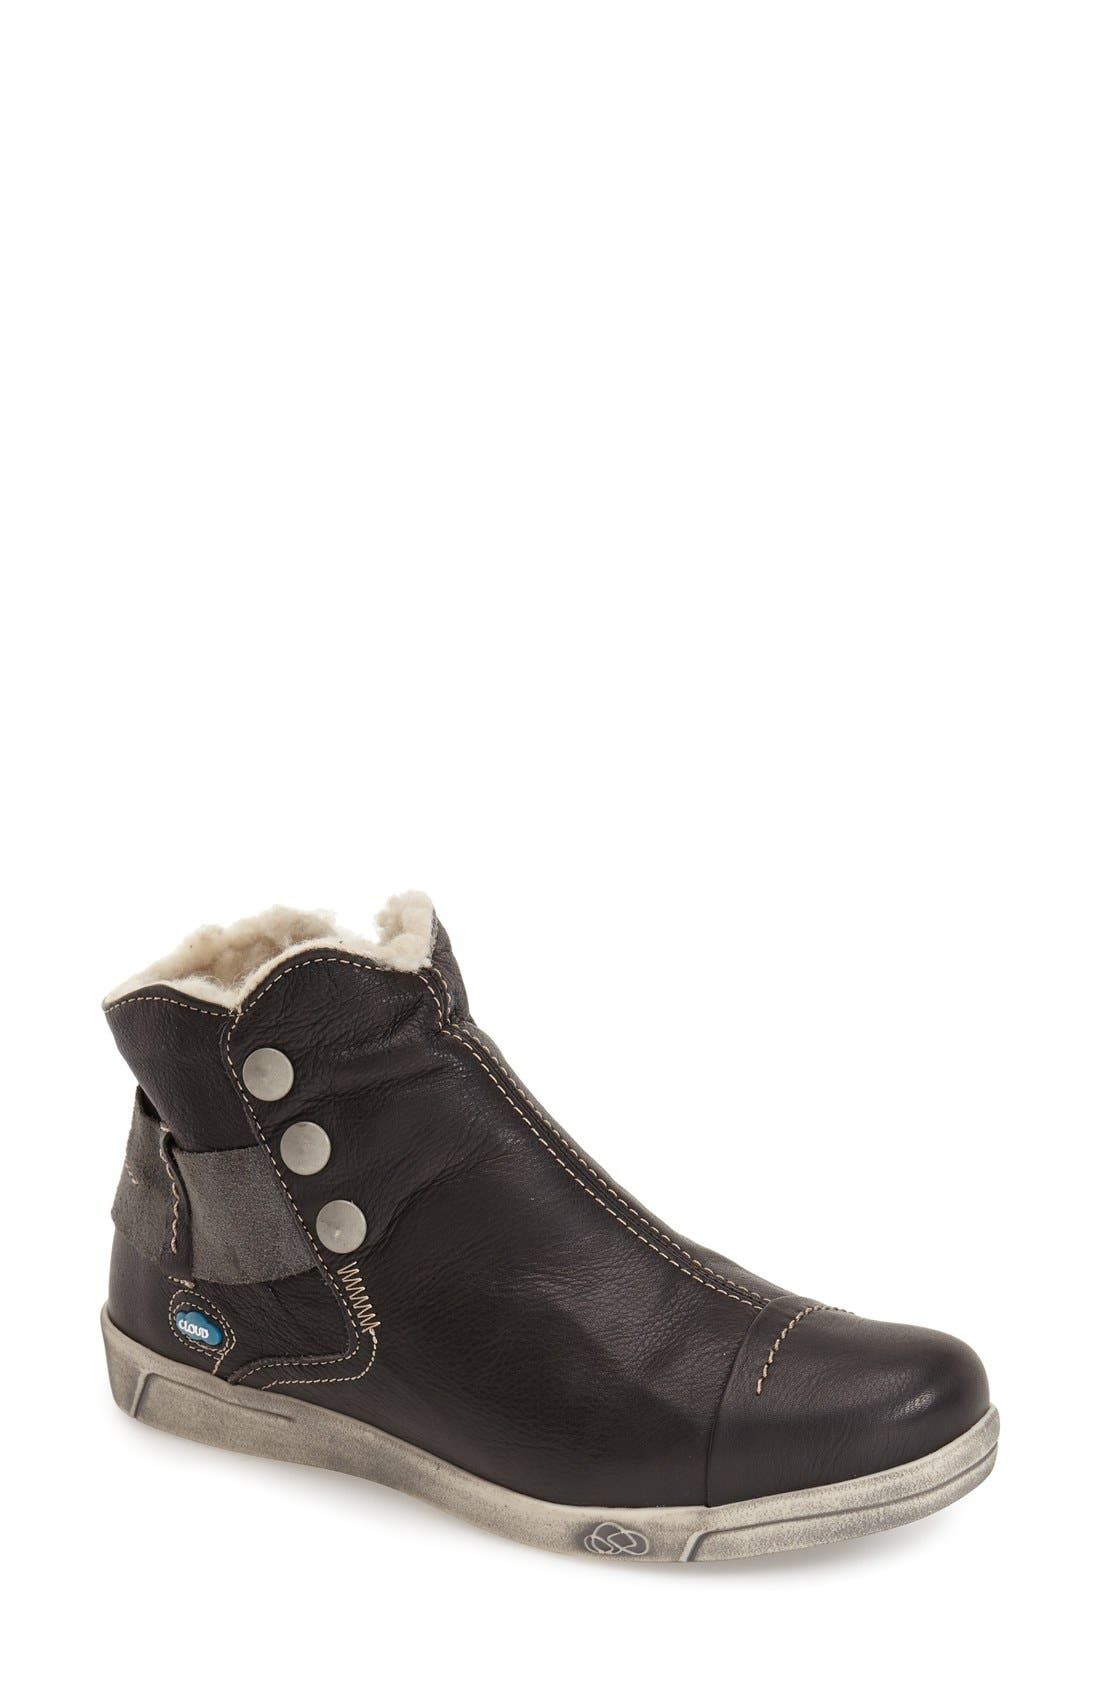 'Aline' Bootie,                             Main thumbnail 1, color,                             Black Leather